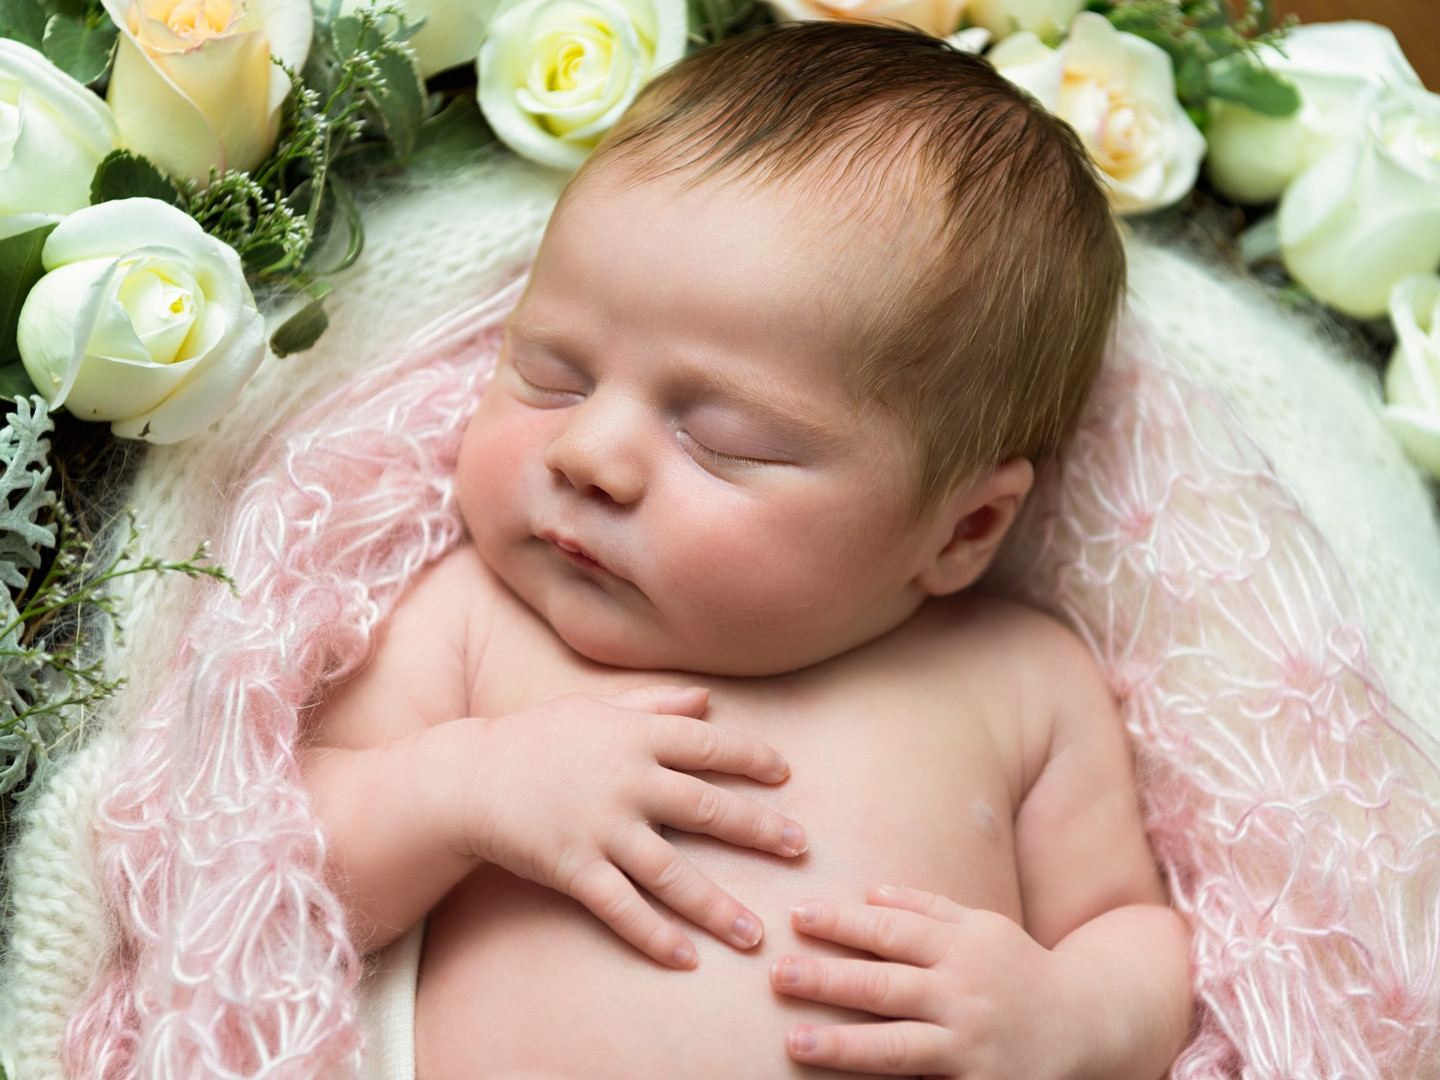 Portrait photograph of a newborn baby girl in a nest of roses